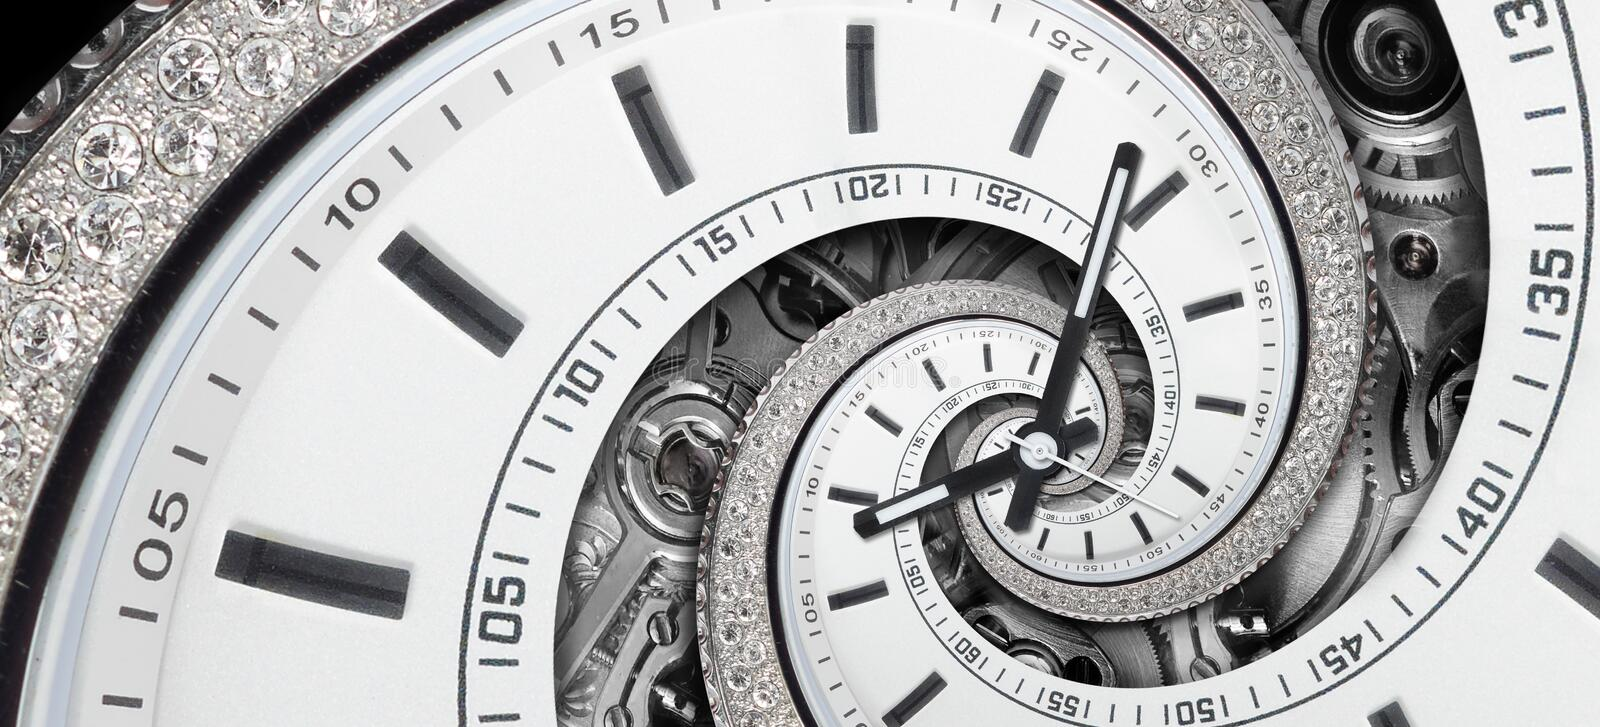 Modern diamond white stylish clock with clock hands and watch mechanism twisted to surreal spiral. Time spiral, time lapse concept. Ual image wide background royalty free stock photos